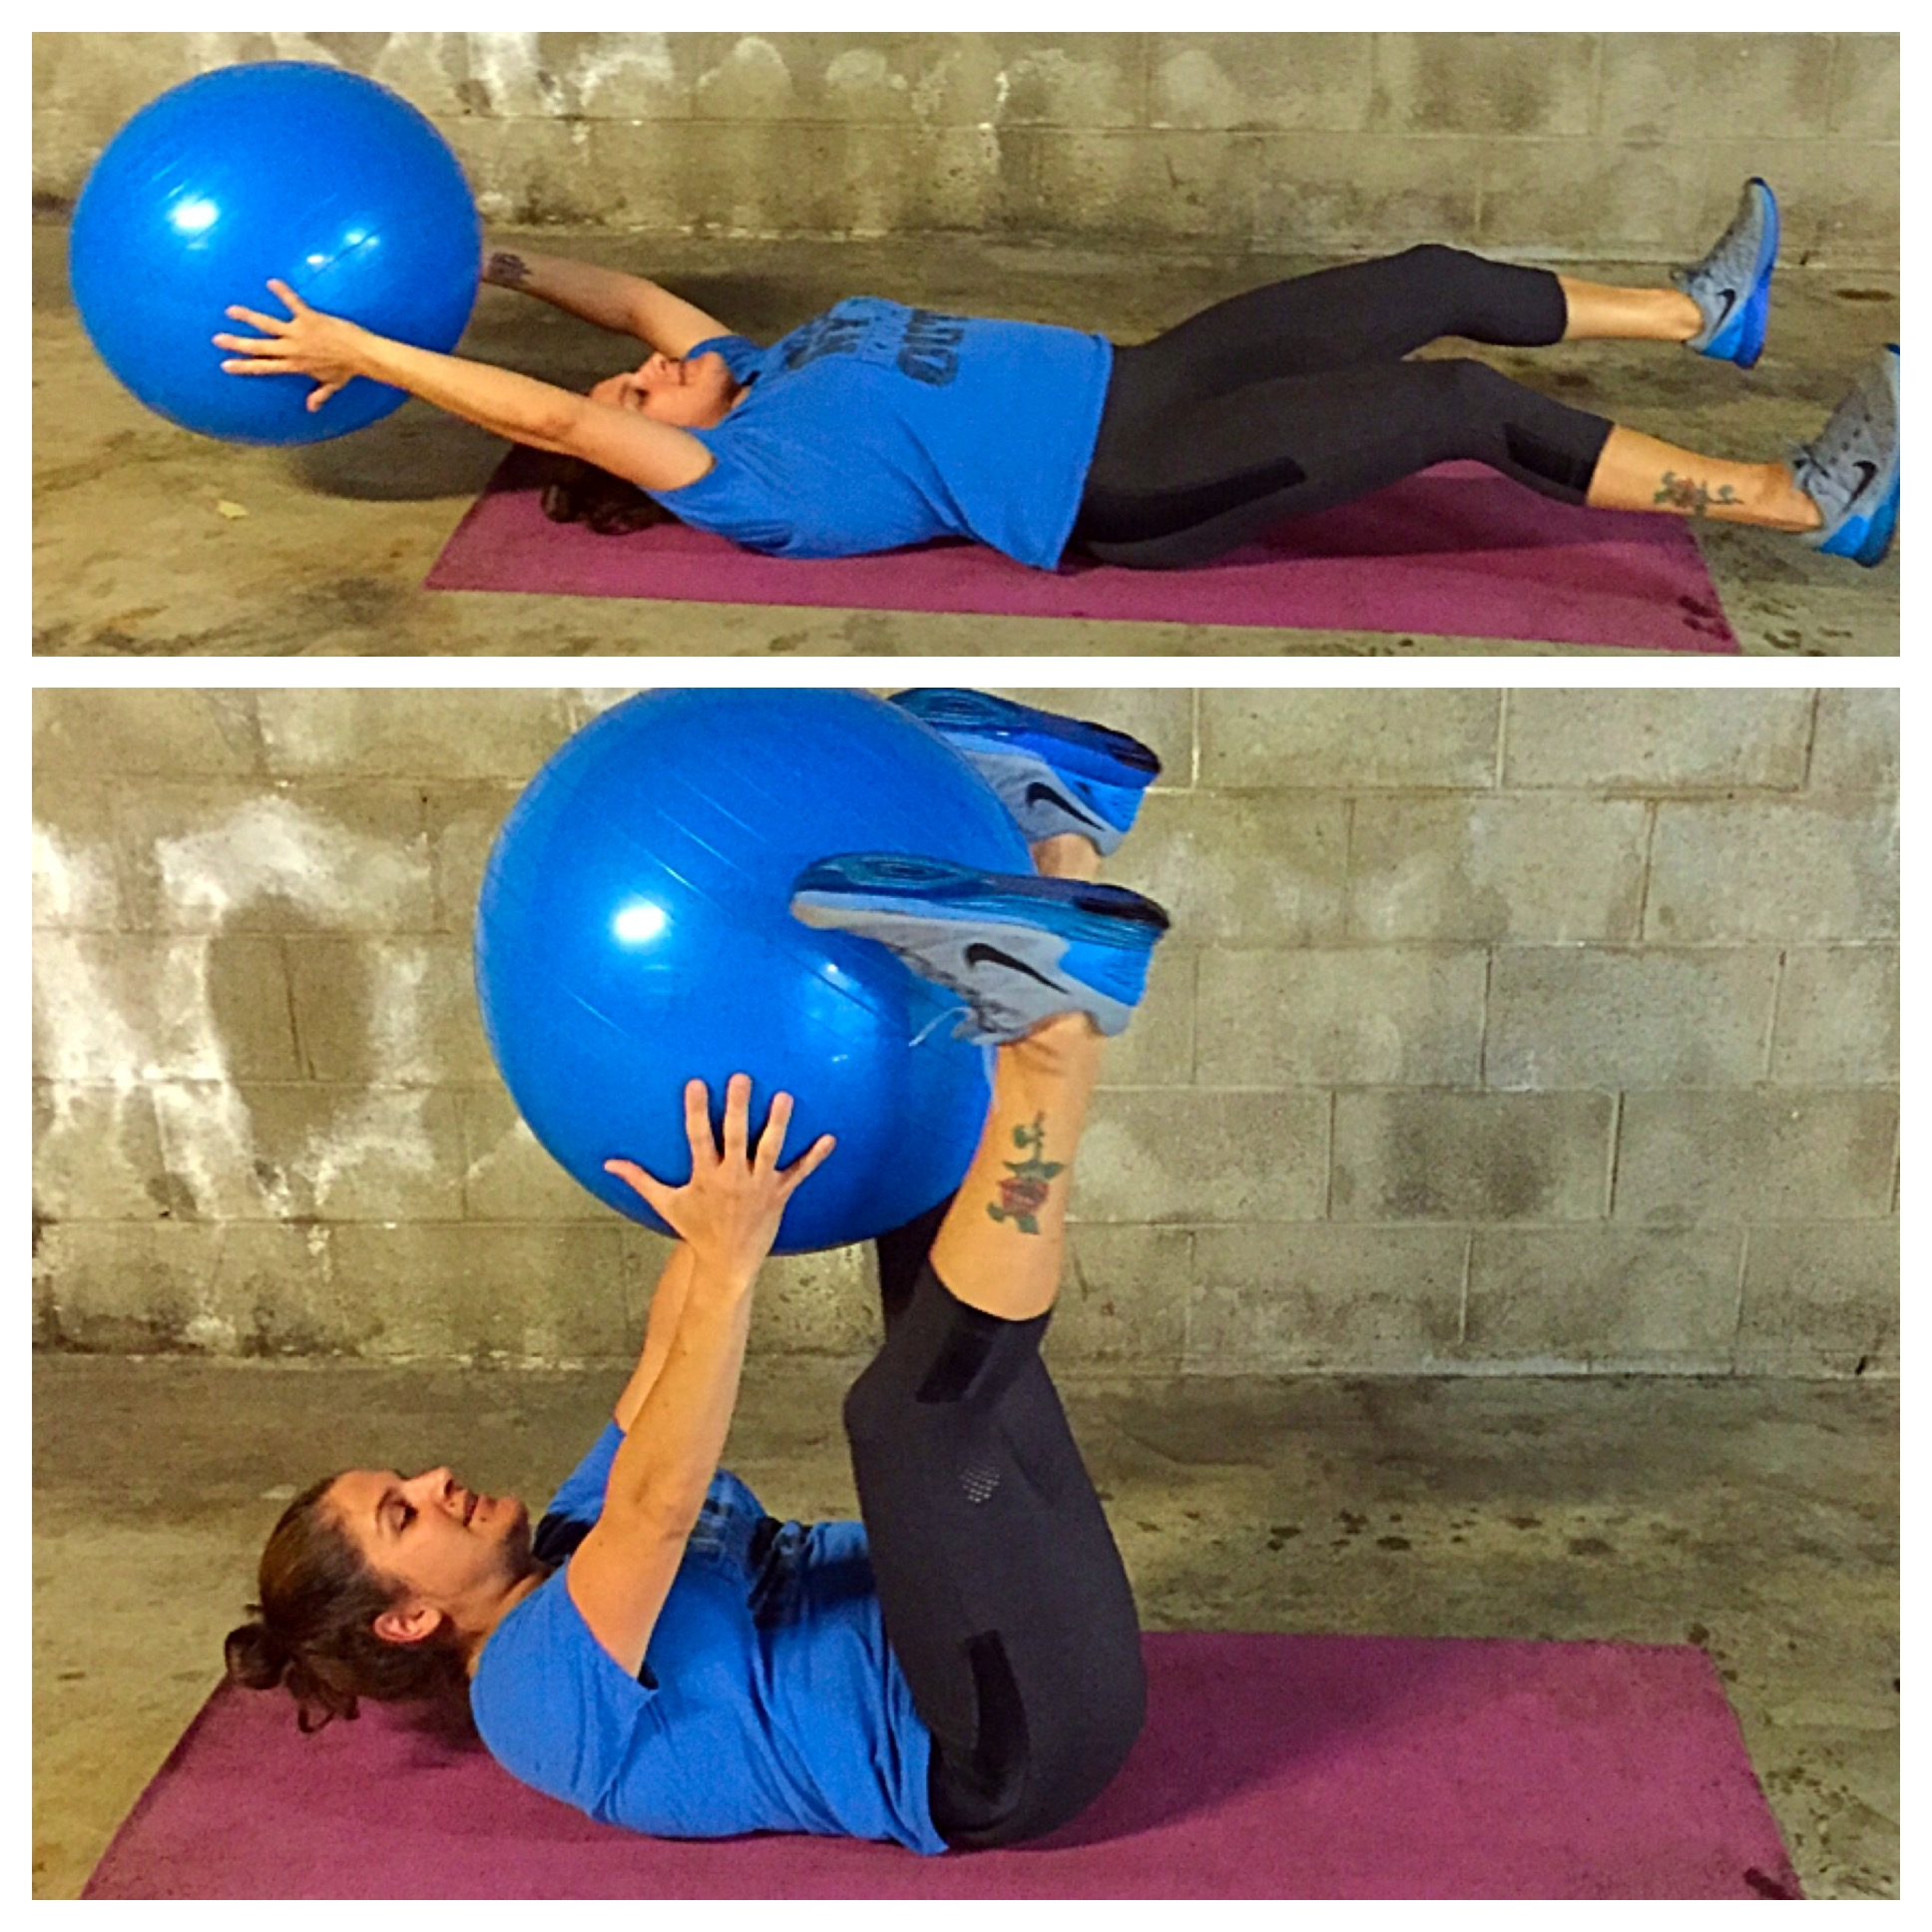 stability ball exerecises, bride to be exercises